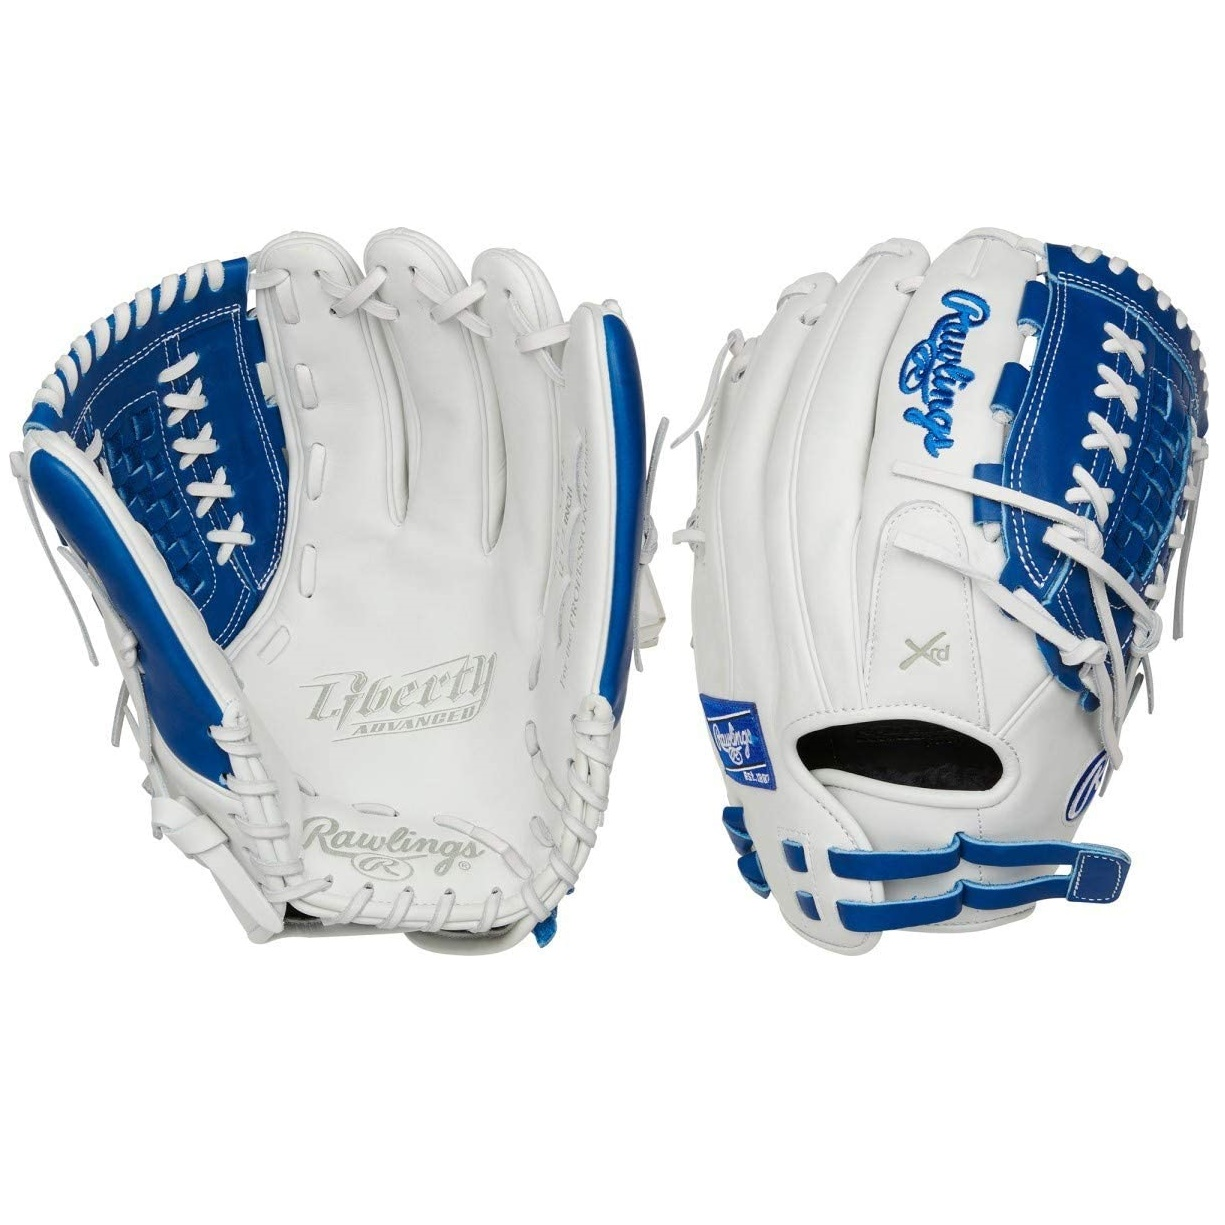 rawlings-liberty-advanced-color-series-12-5-fastpitch-softball-glove-right-hand-throw RLA125-18R-RightHandThrow   Crafted from the finest full-grain leather the Liberty Advanced 12.5-Inch fastpitch